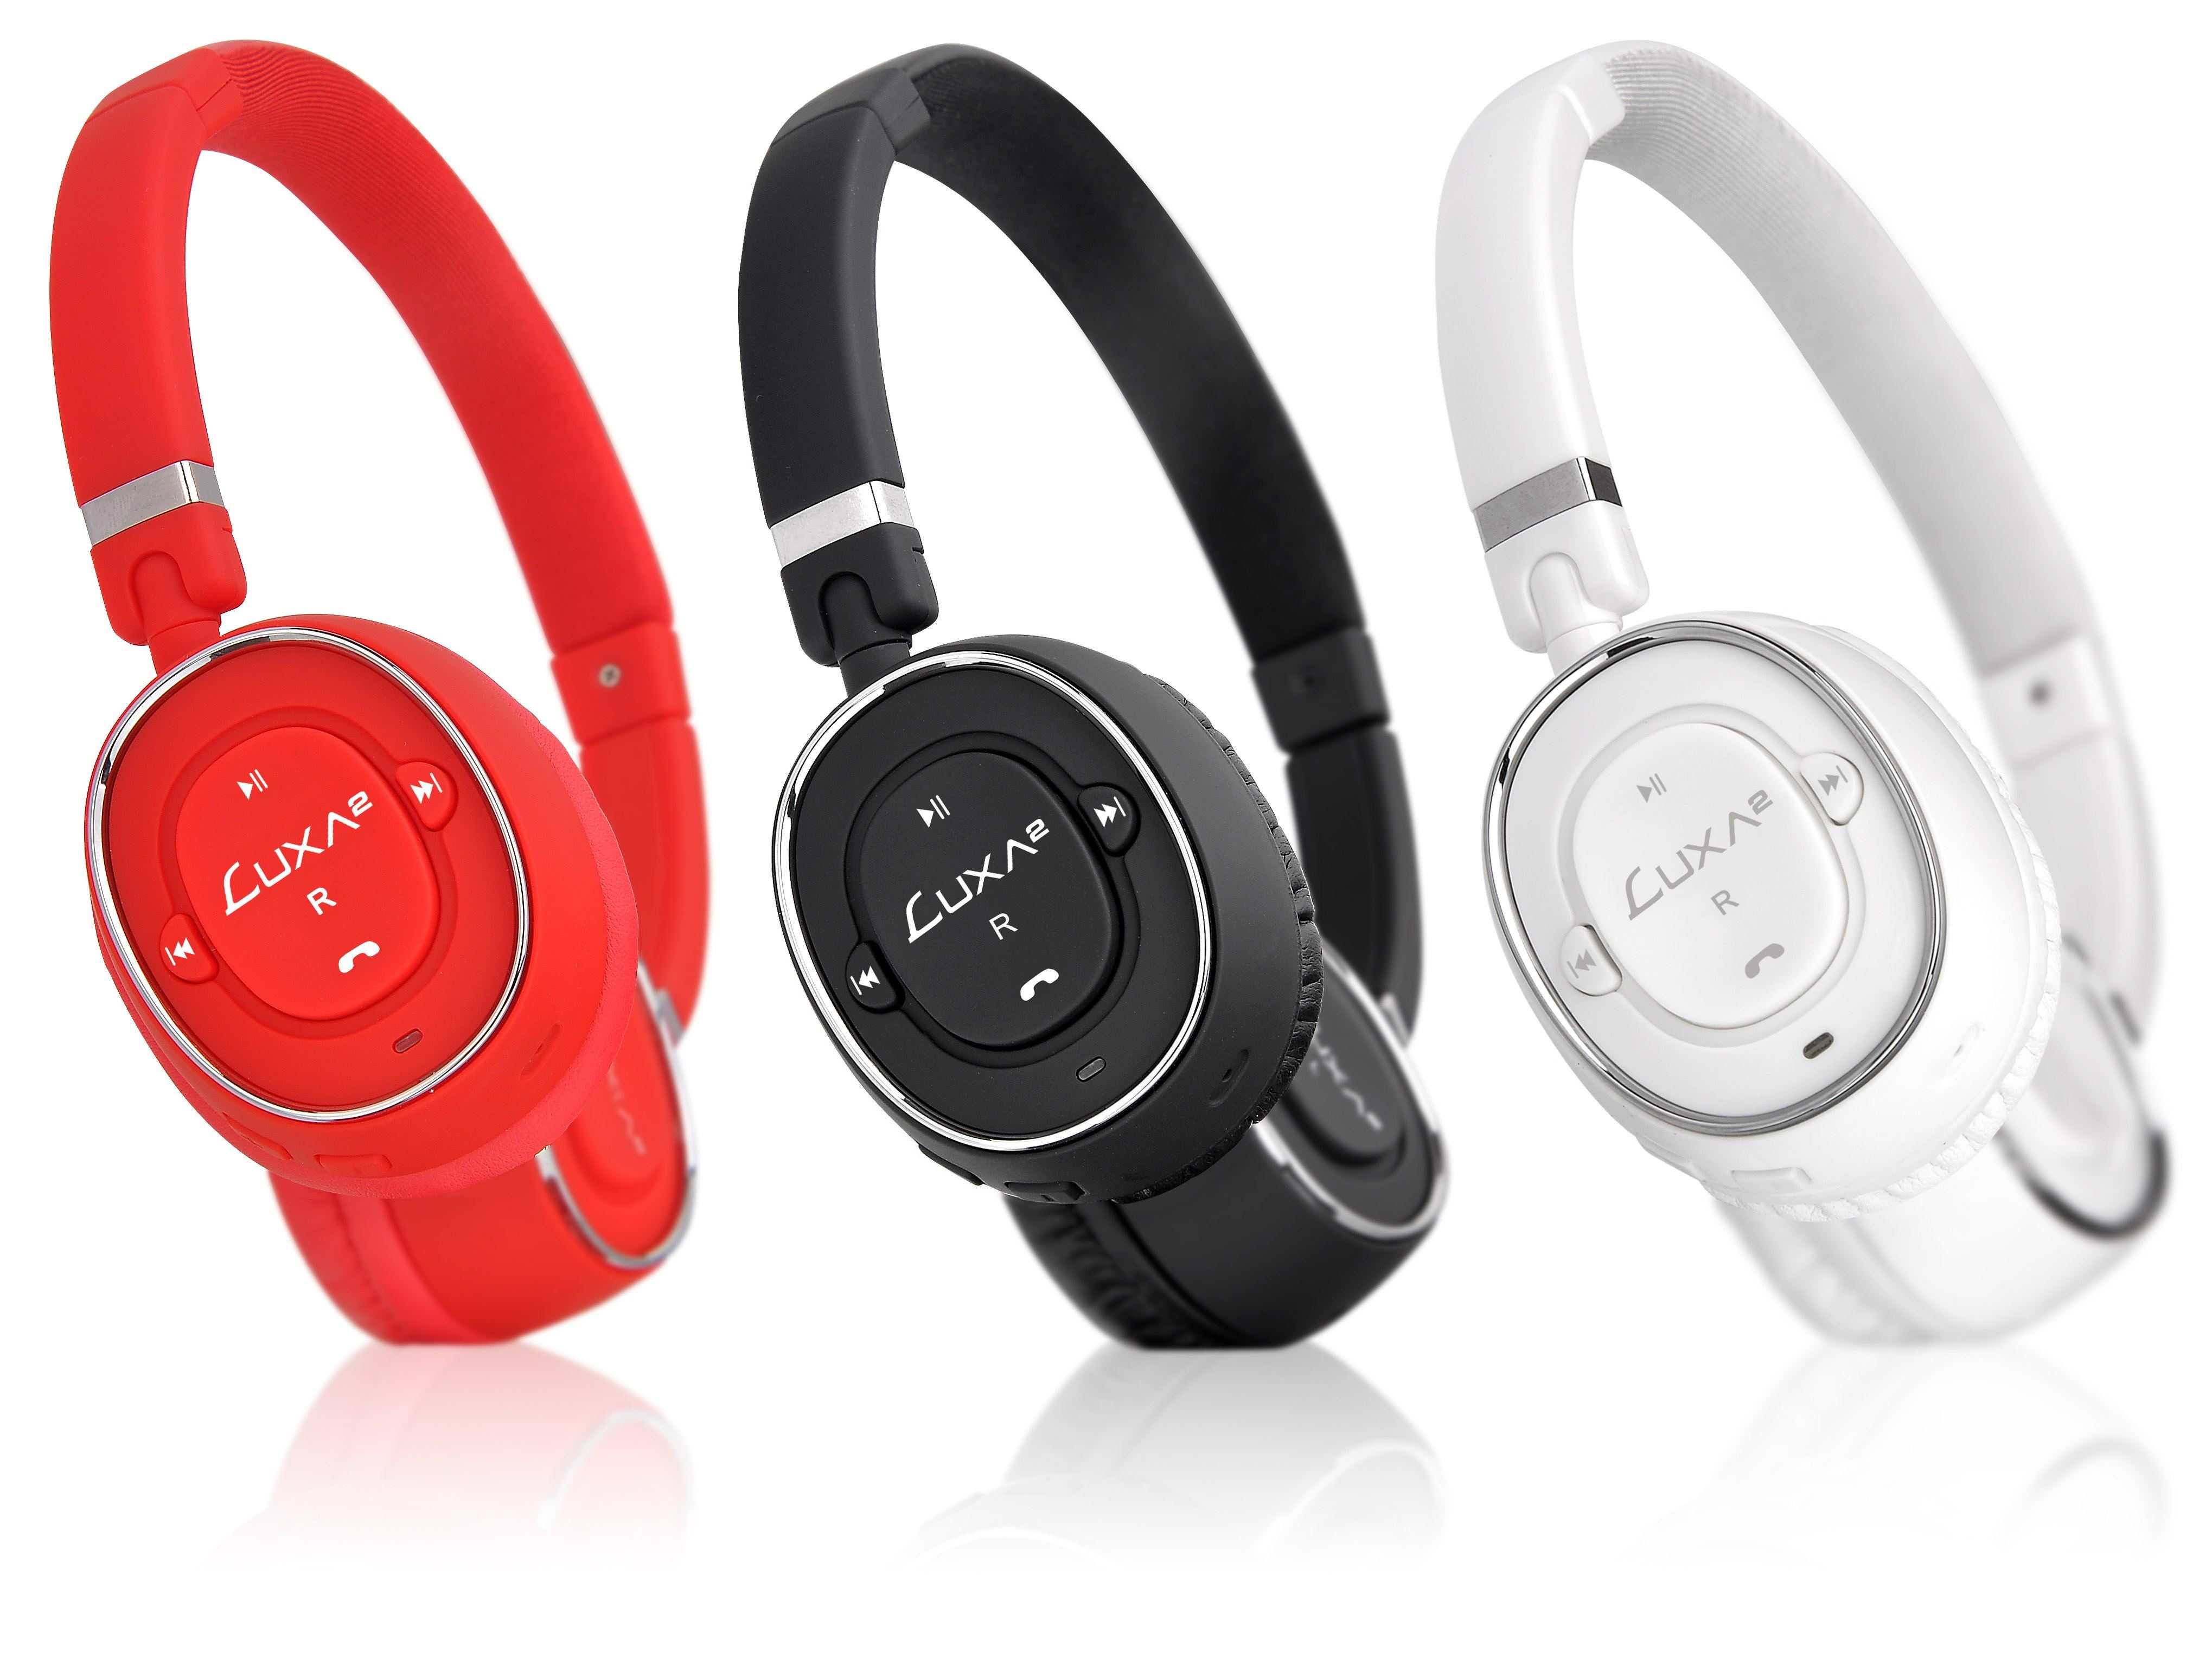 LUXA2 - BT-X3 Bluetooth Stereo Headphones.jpg